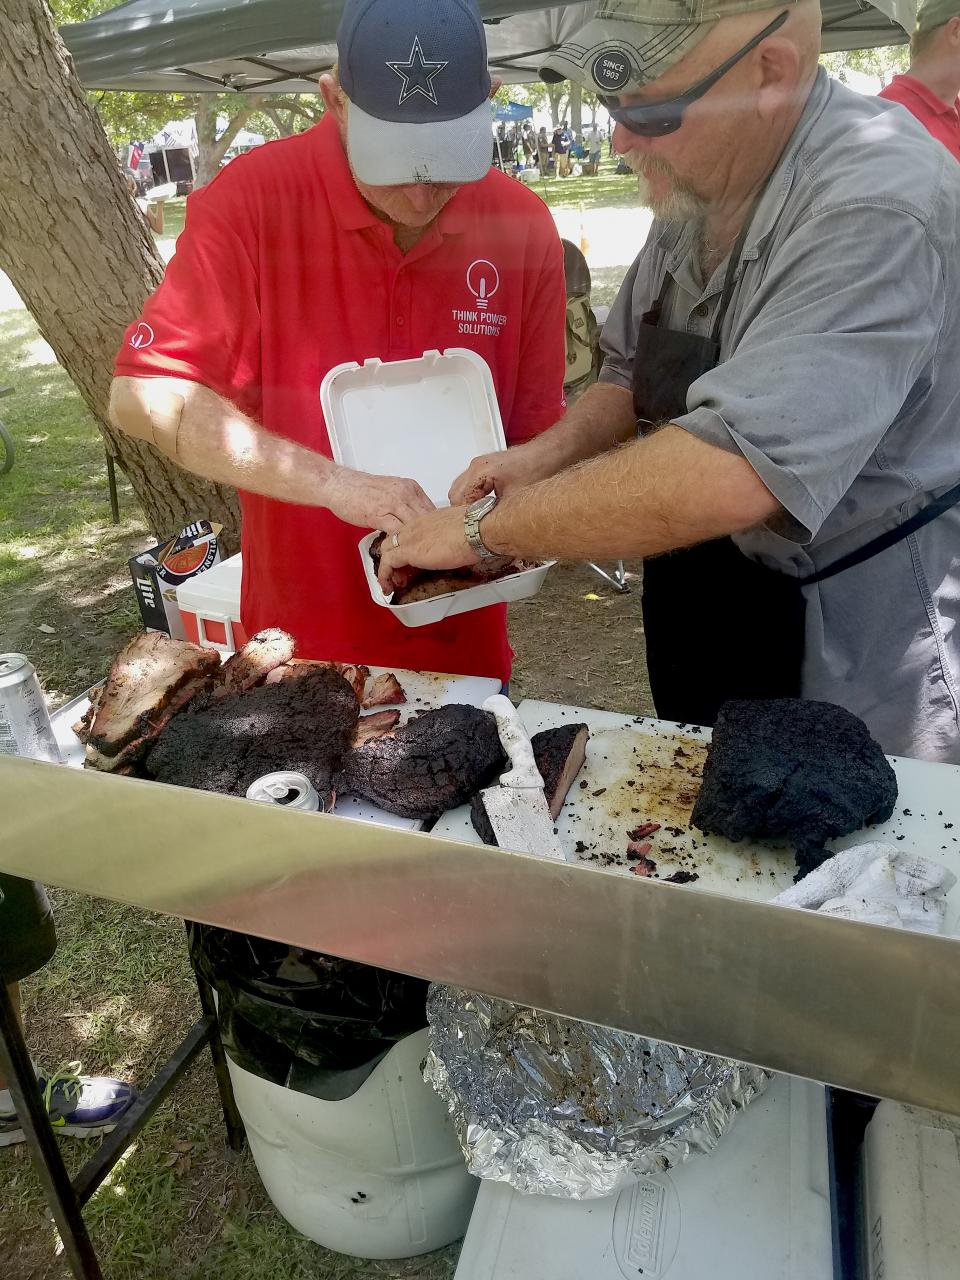 Think Power Team barbecuing at the Lineman's Rodeo